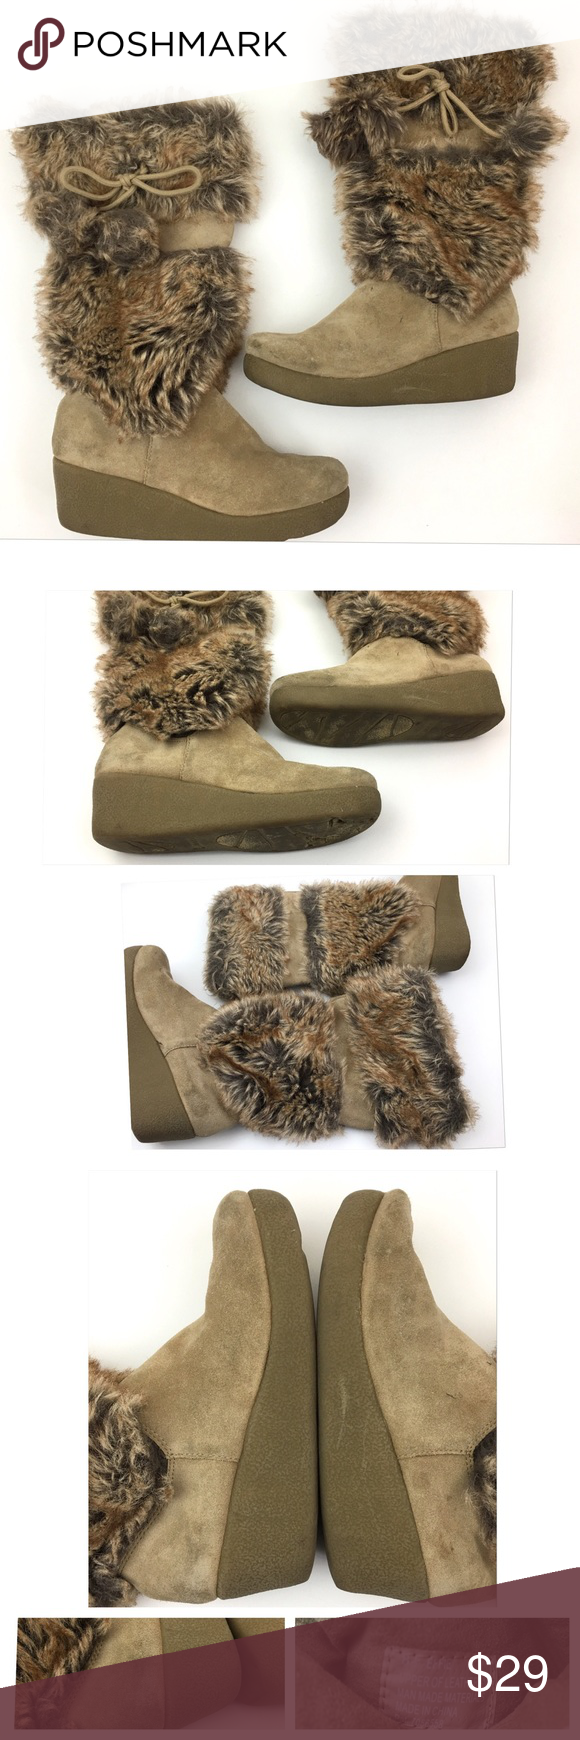 """REPORT Faux Fur Leather POM POM Wedge Boots REPORT Faux Fur Suede Leather Wedge Heel POM POM  Women's Boots Size 8.5 M Style: Effie  Pre Owned Boots, in Good Shape Some wear on Suede Minor Toe Scuffing- Shown in Photos Original Box is Not included  Heel Height:2"""" Boot Shaft from Arch:15.5"""" Circumference:6.5""""        Item comes from a pet free/smoke free clean environment please contact me for any additional questions REPORT Shoes Heeled Boots"""